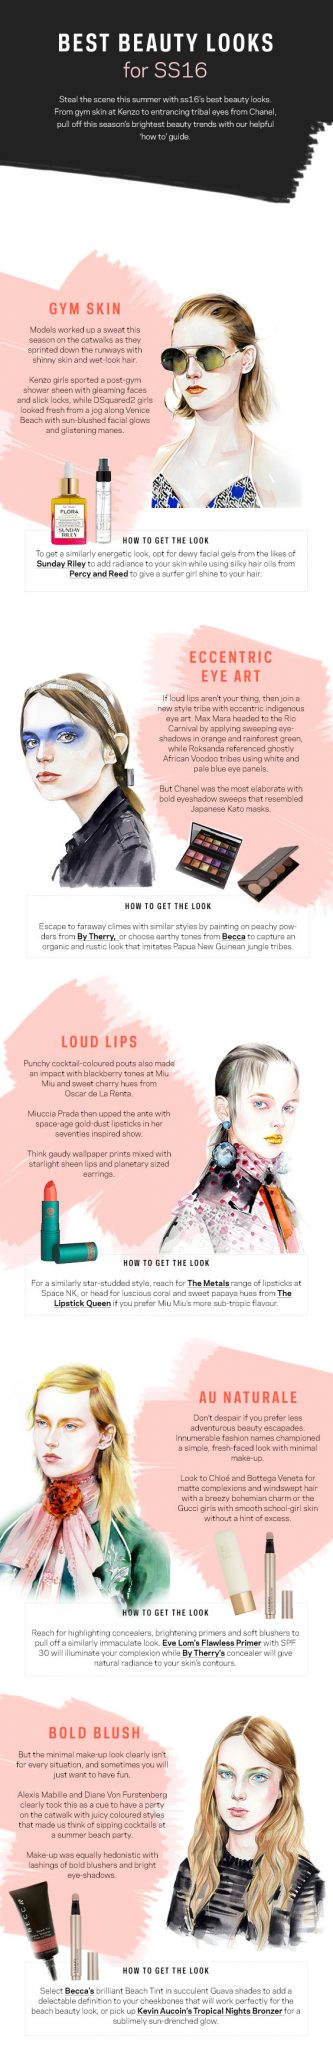 MakeupTrends 2016